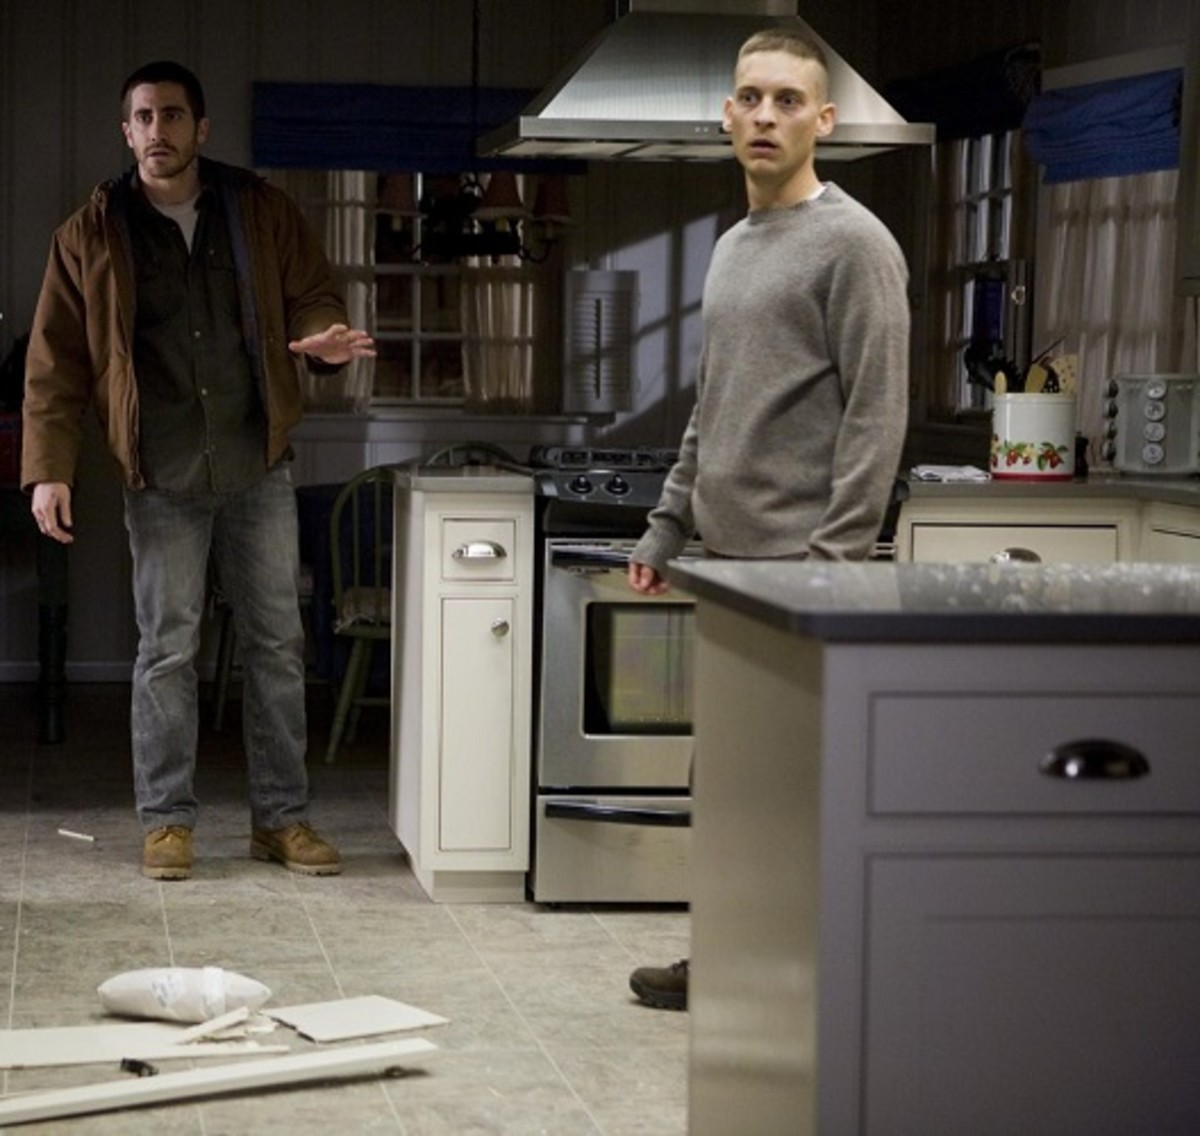 Brothers(2009)